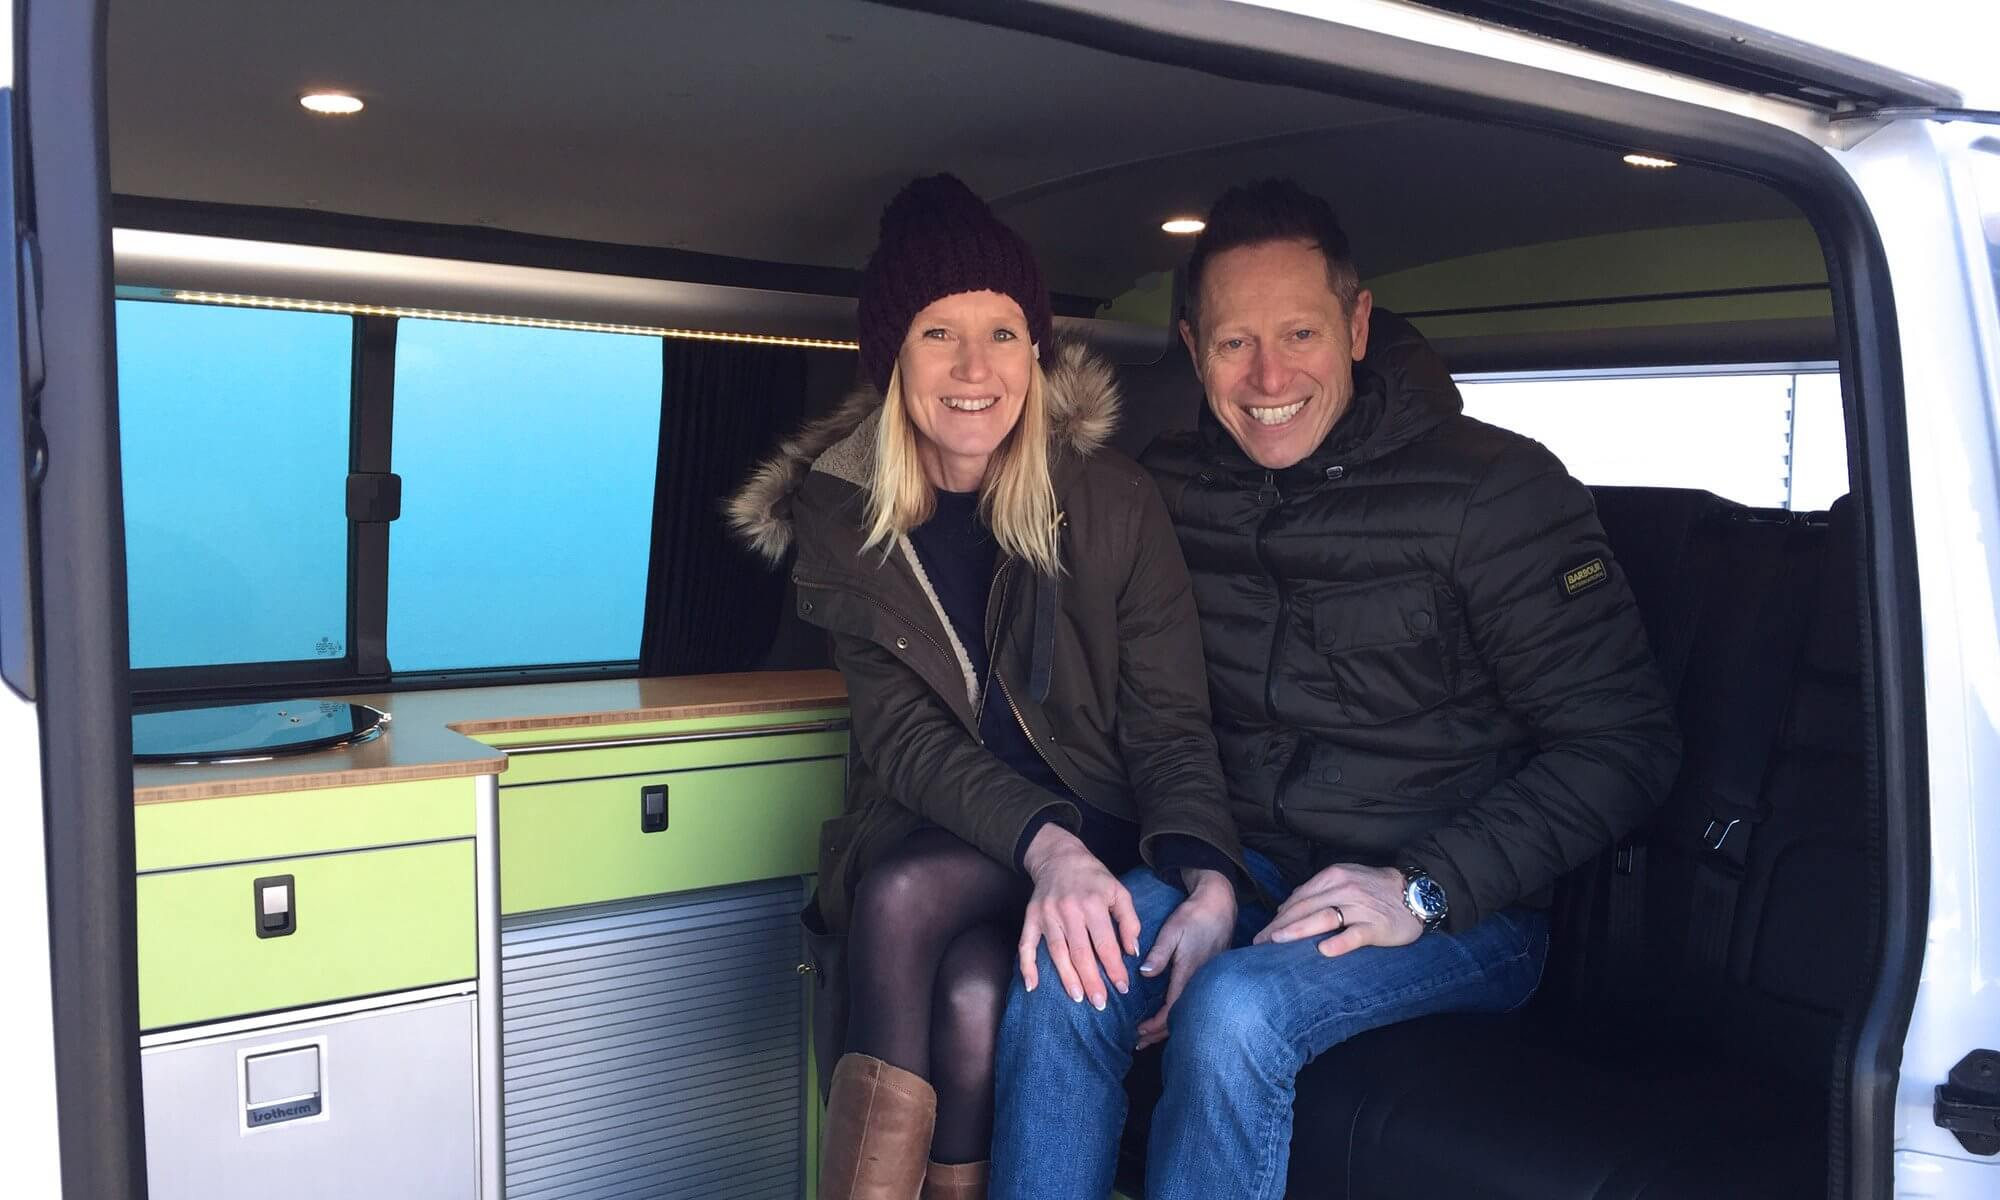 Sarah-and-clive-collecting-their-newly-converted-vw-t6-sportline-camper-conversion